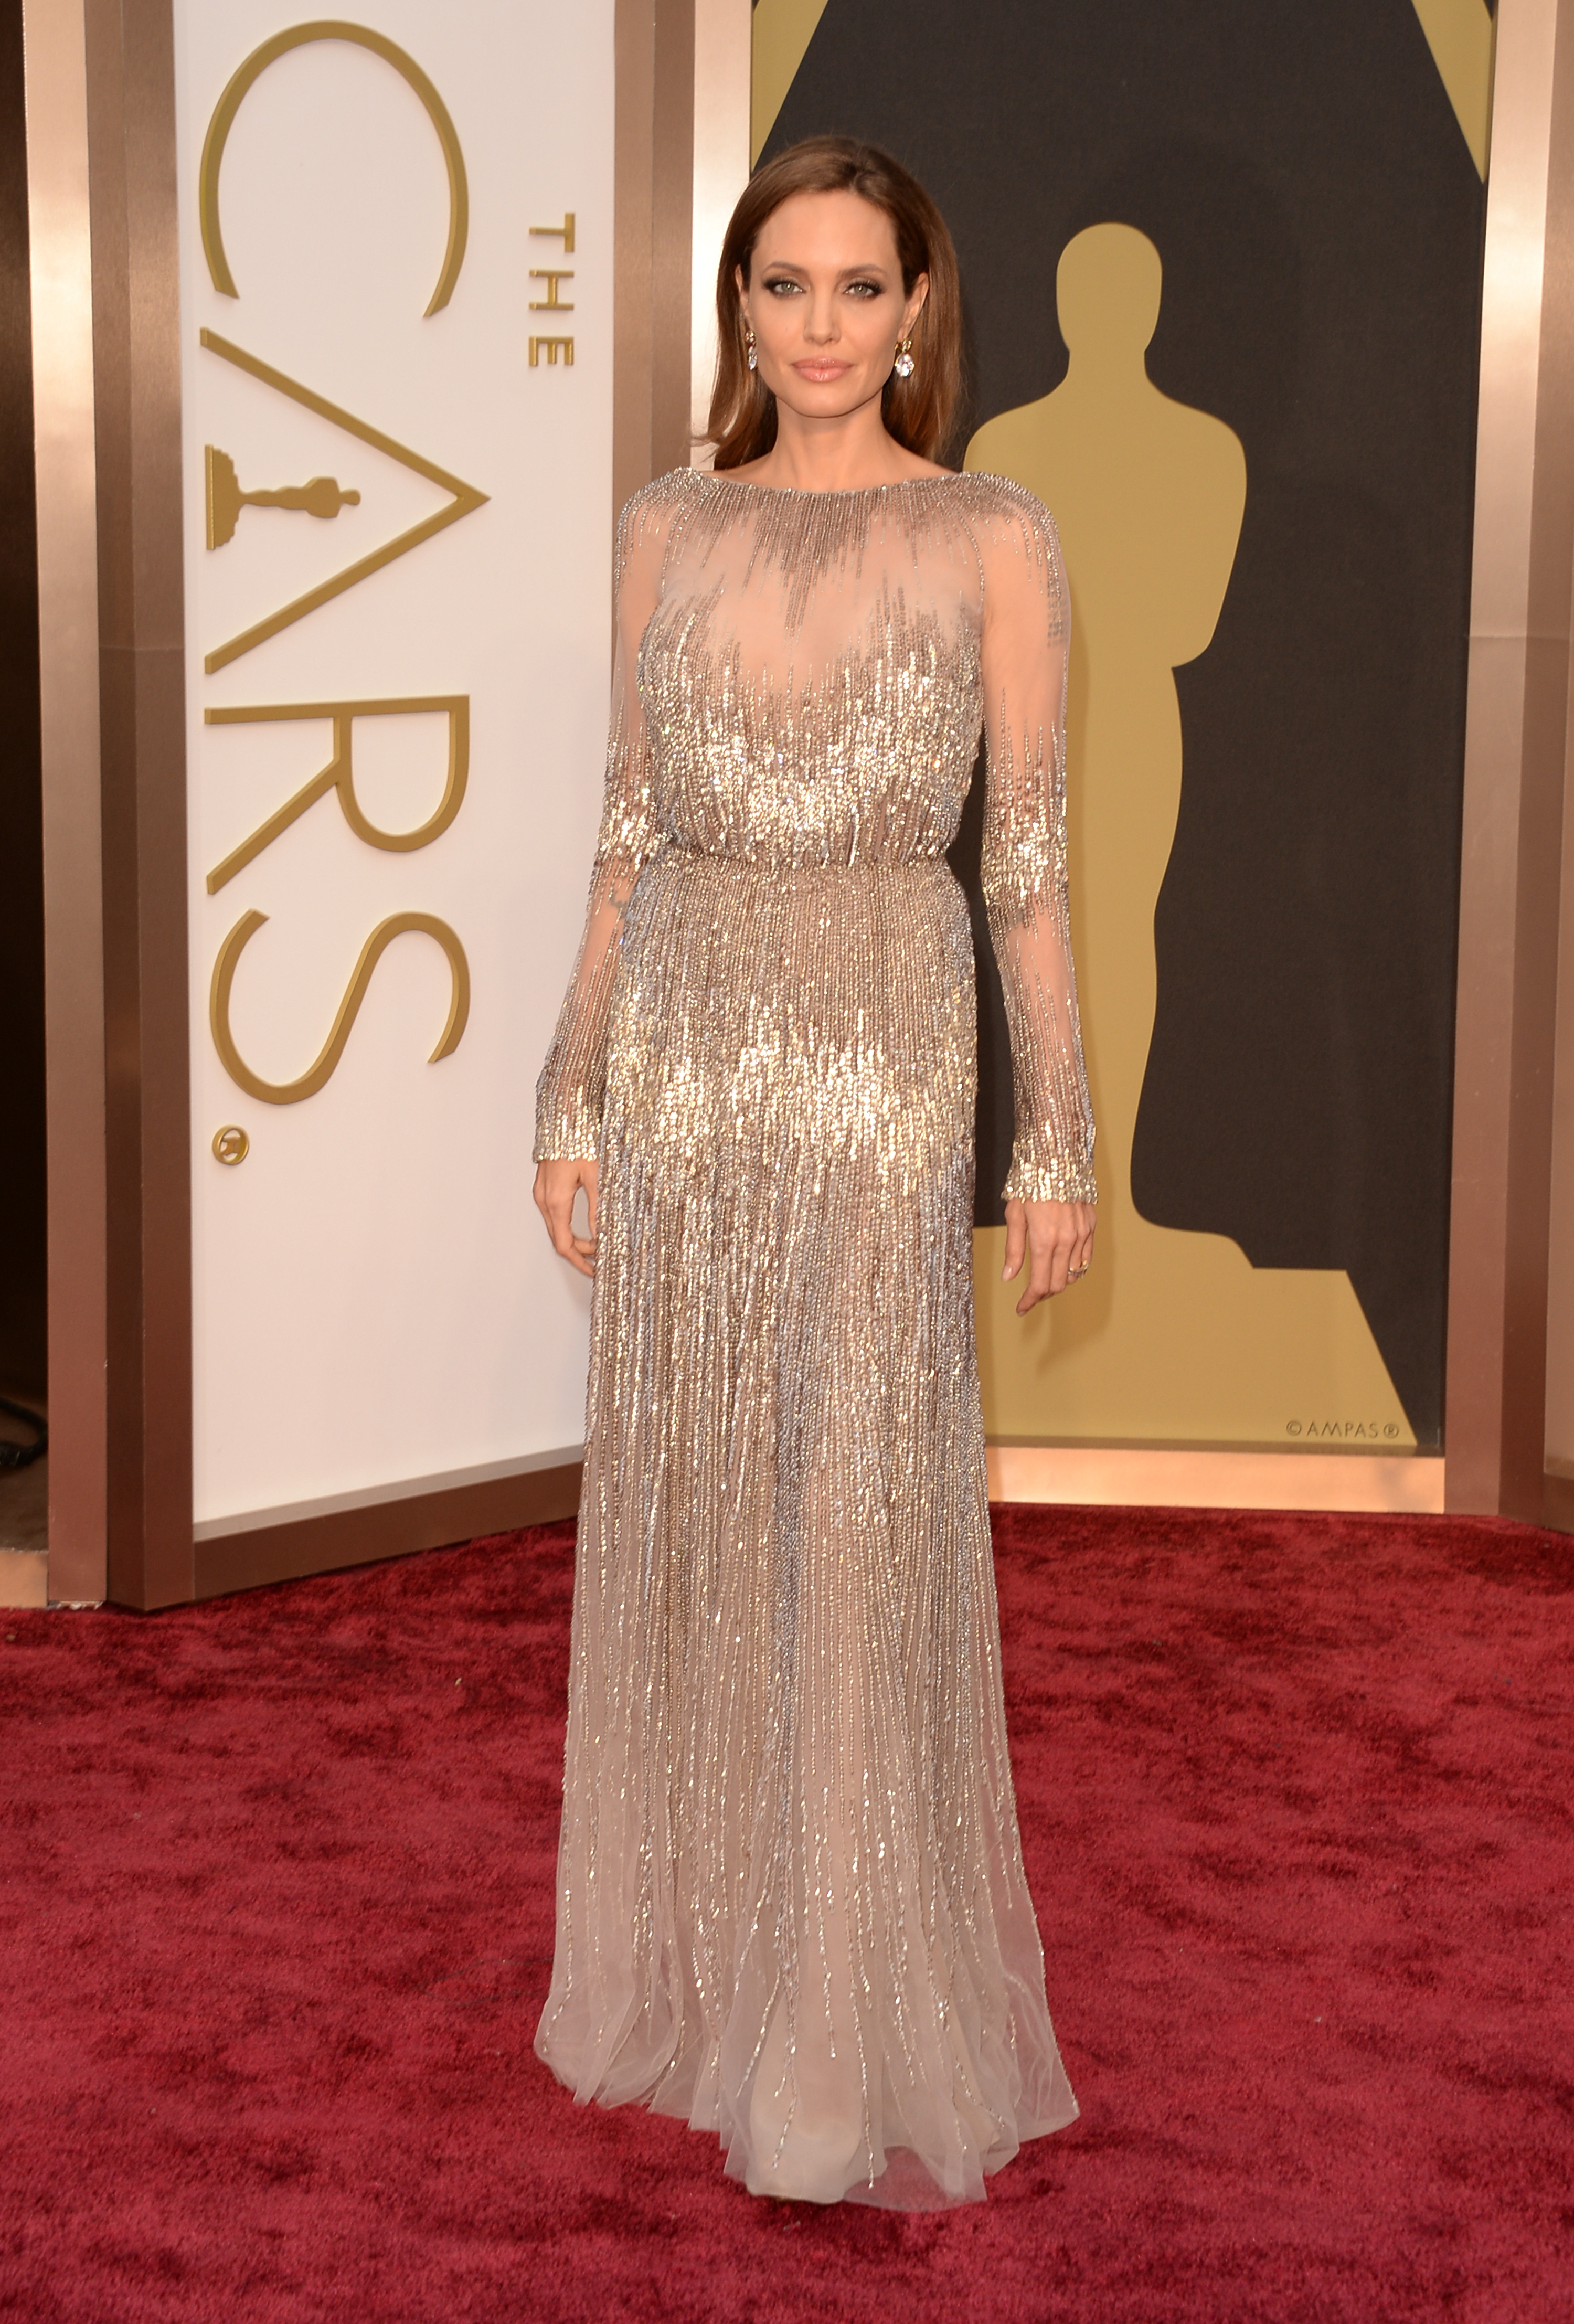 7eecdca8e4 11 Times Angelina Jolie Looked Amazing While Not Wearing Black